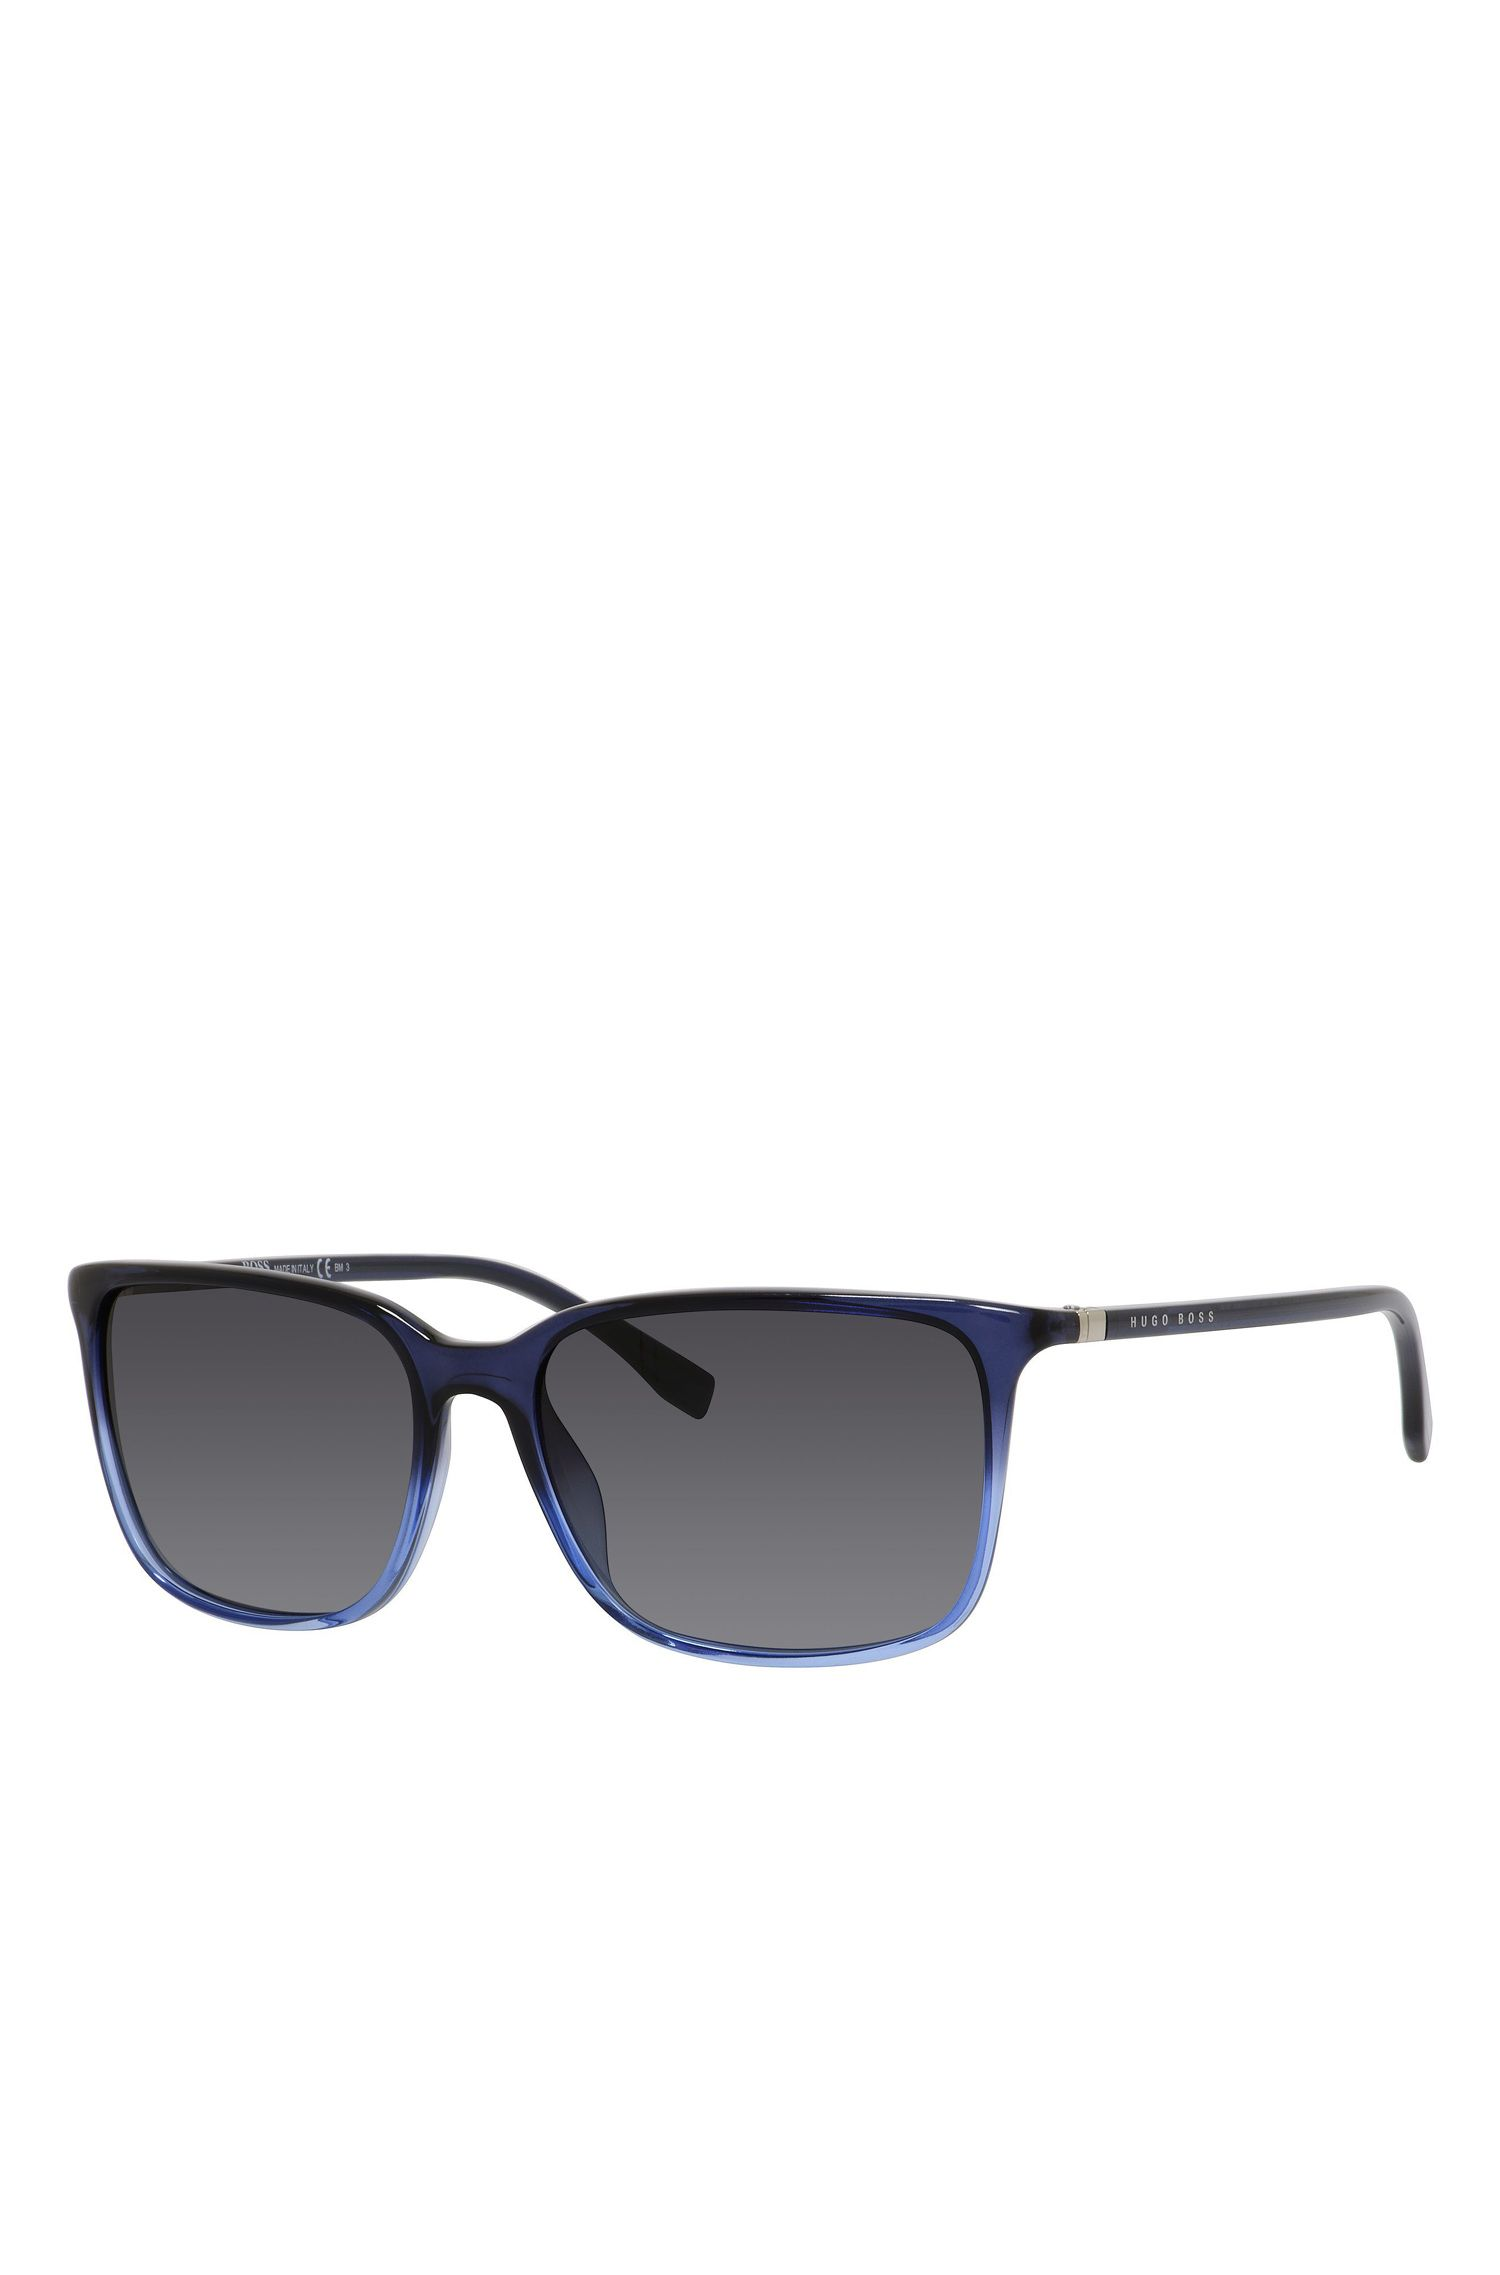 Gradient Lens Rectangular Sunglasses | BOSS 0666S